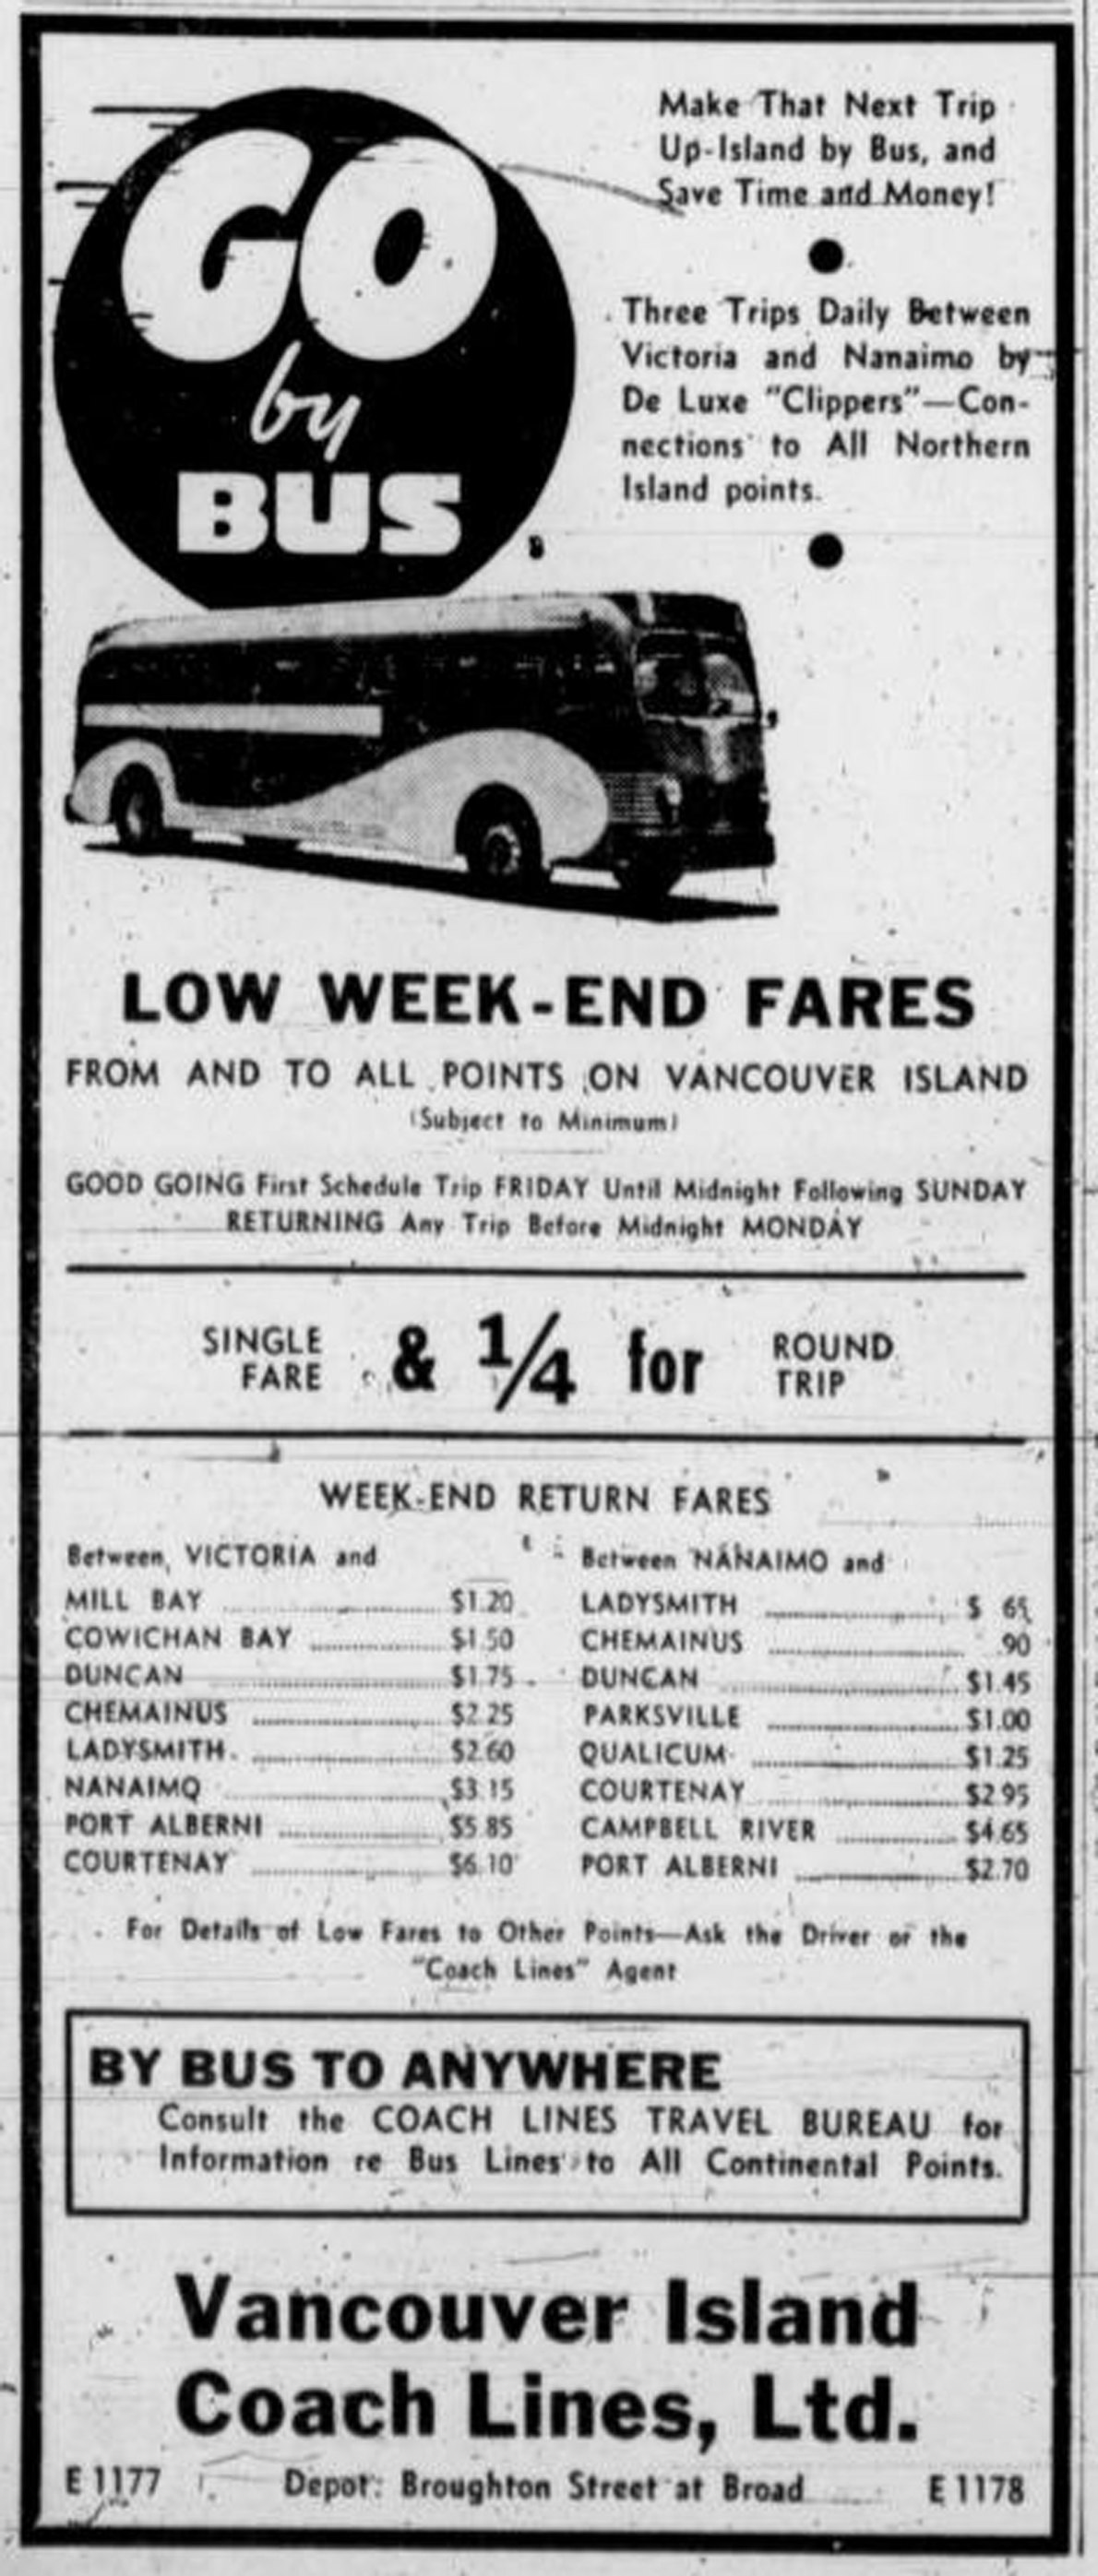 1940 advertisement for Vancouver Island Coach Lines, showing fares between Victoria and other Vancouver Island locations (Victoria Online Sightseeing Tours collection)